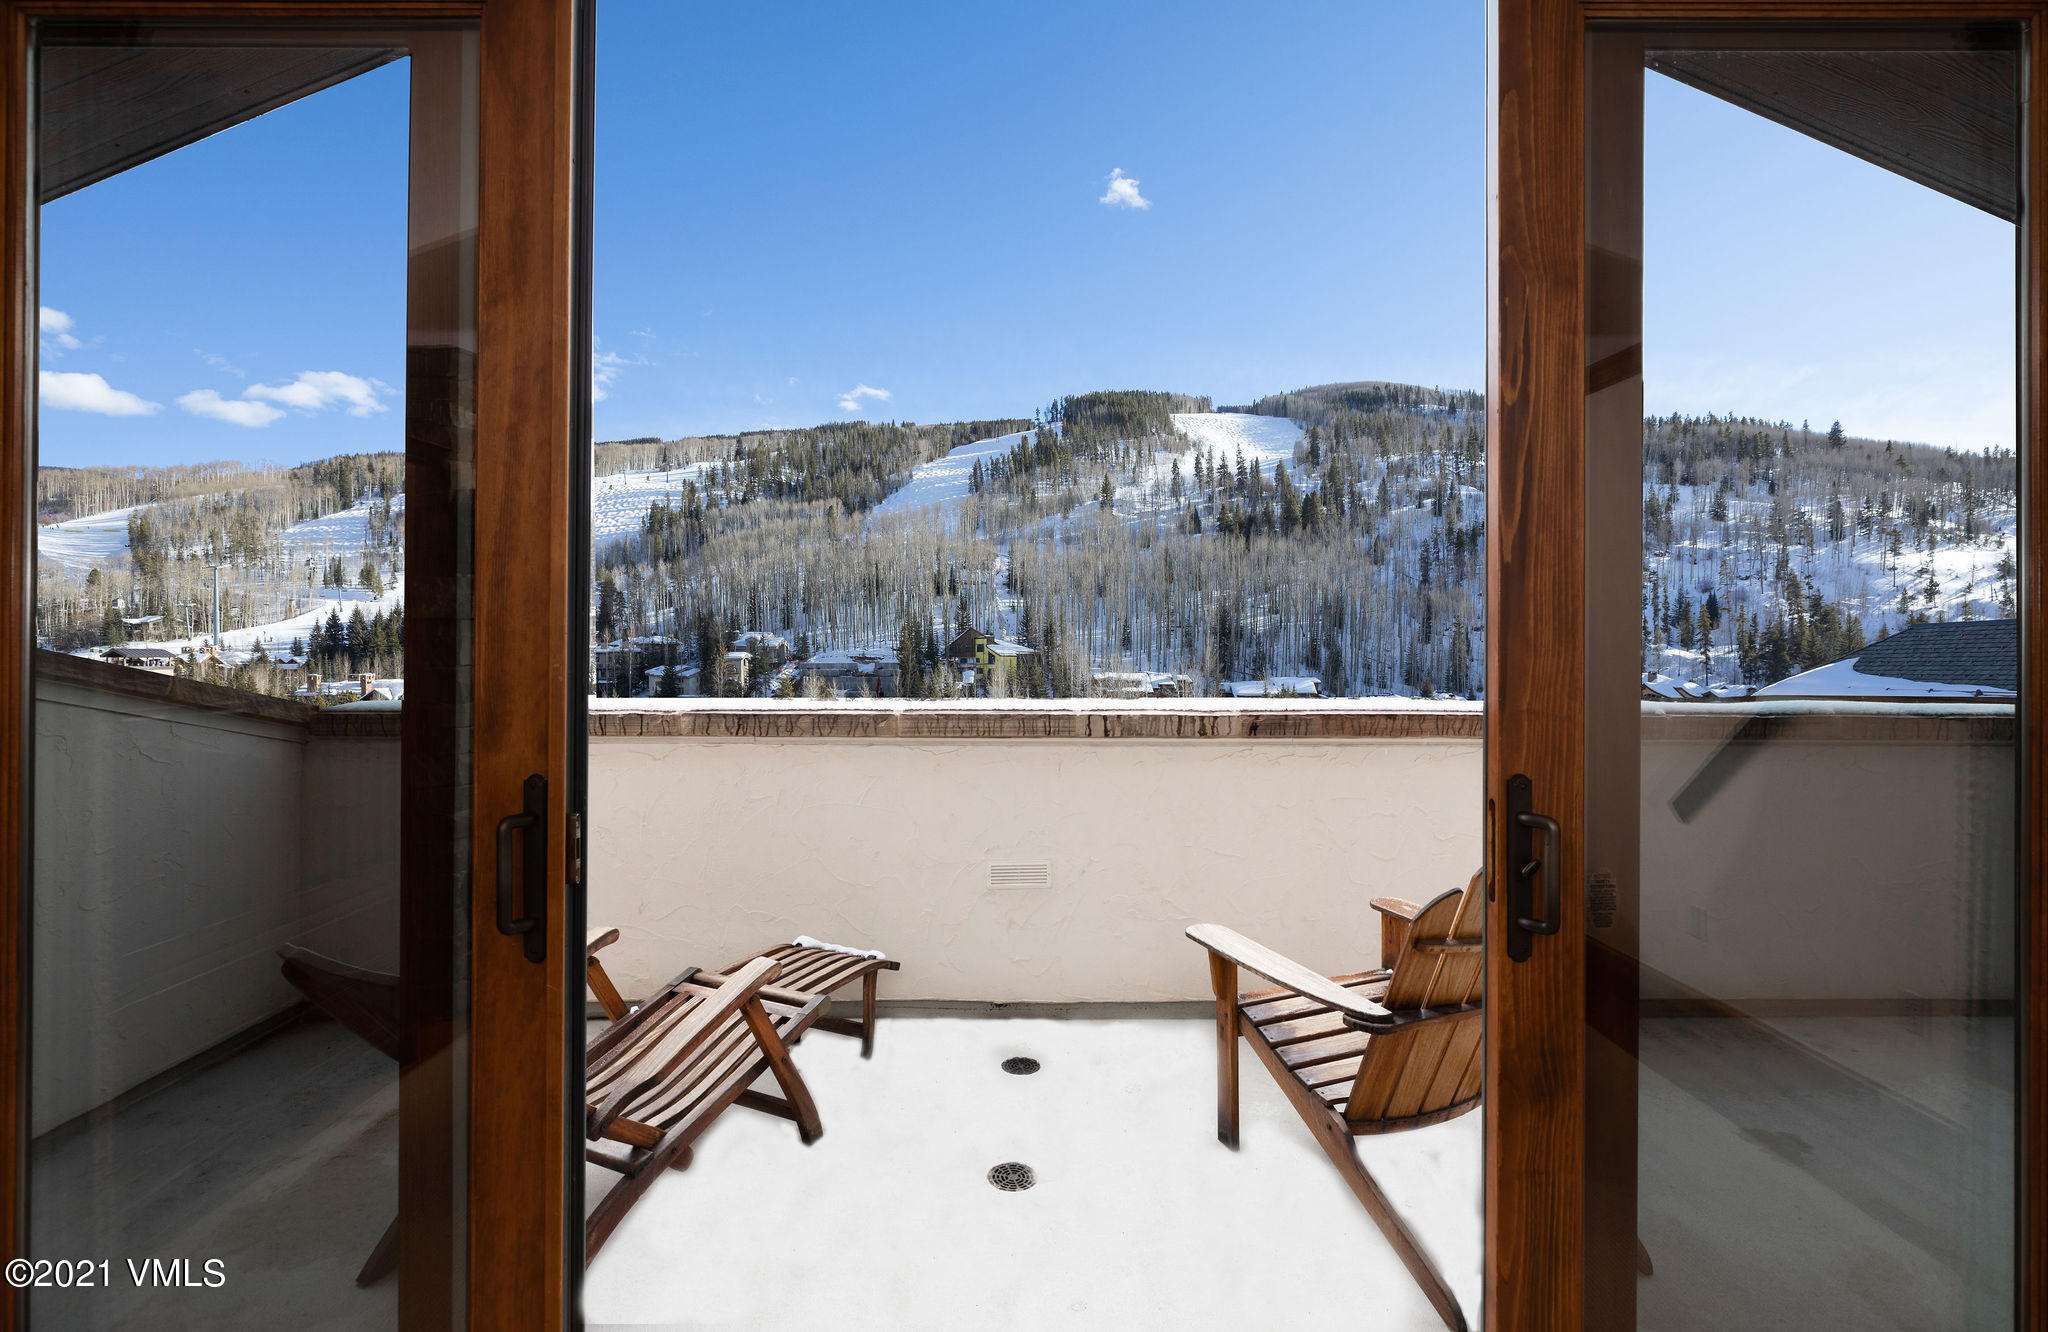 The one and only High Noon Penthouse is available for sale for the very first time. Panoramic views of Vail Mountain and the Gore Range greet you throughout the home, impressing even the most particular buyer. Wake up every morning to awe-inspiring Vail mountain slope views from the spacious primary bedroom with 12-foot vaulted ceilings, a walk-in closet, fireplace and 5-piece ensuite bath. The gourmet chef kitchen and living room continue the penthouse views from all angles, and your large 440+ square foot private deck with a heated floor not only immerses you in the surrounding mountain landscape but provides a large space for sunning, entertaining, or enjoying evening cocktails under the stars. A sought-after corner location 3-bedroom, 3-bath ensuite home with 13-foot vaulted ceilings in the great room boasts natural light throughout the desired open floor plan plus a 4th full bathroom to accommodate all hosting needs. As a Marriott penthouse owner, enjoy all amenities the resort has to offer including a heated year-round pool and spa, ski valet and ski shop, onsite restaurant and pub, an oxygen bar, full service spa and two garage parking spots. Must see in person to take in the full experience of a home such as this that is very private and quiet while having extraordinary views. A truly luxurious place to call your Vail home.